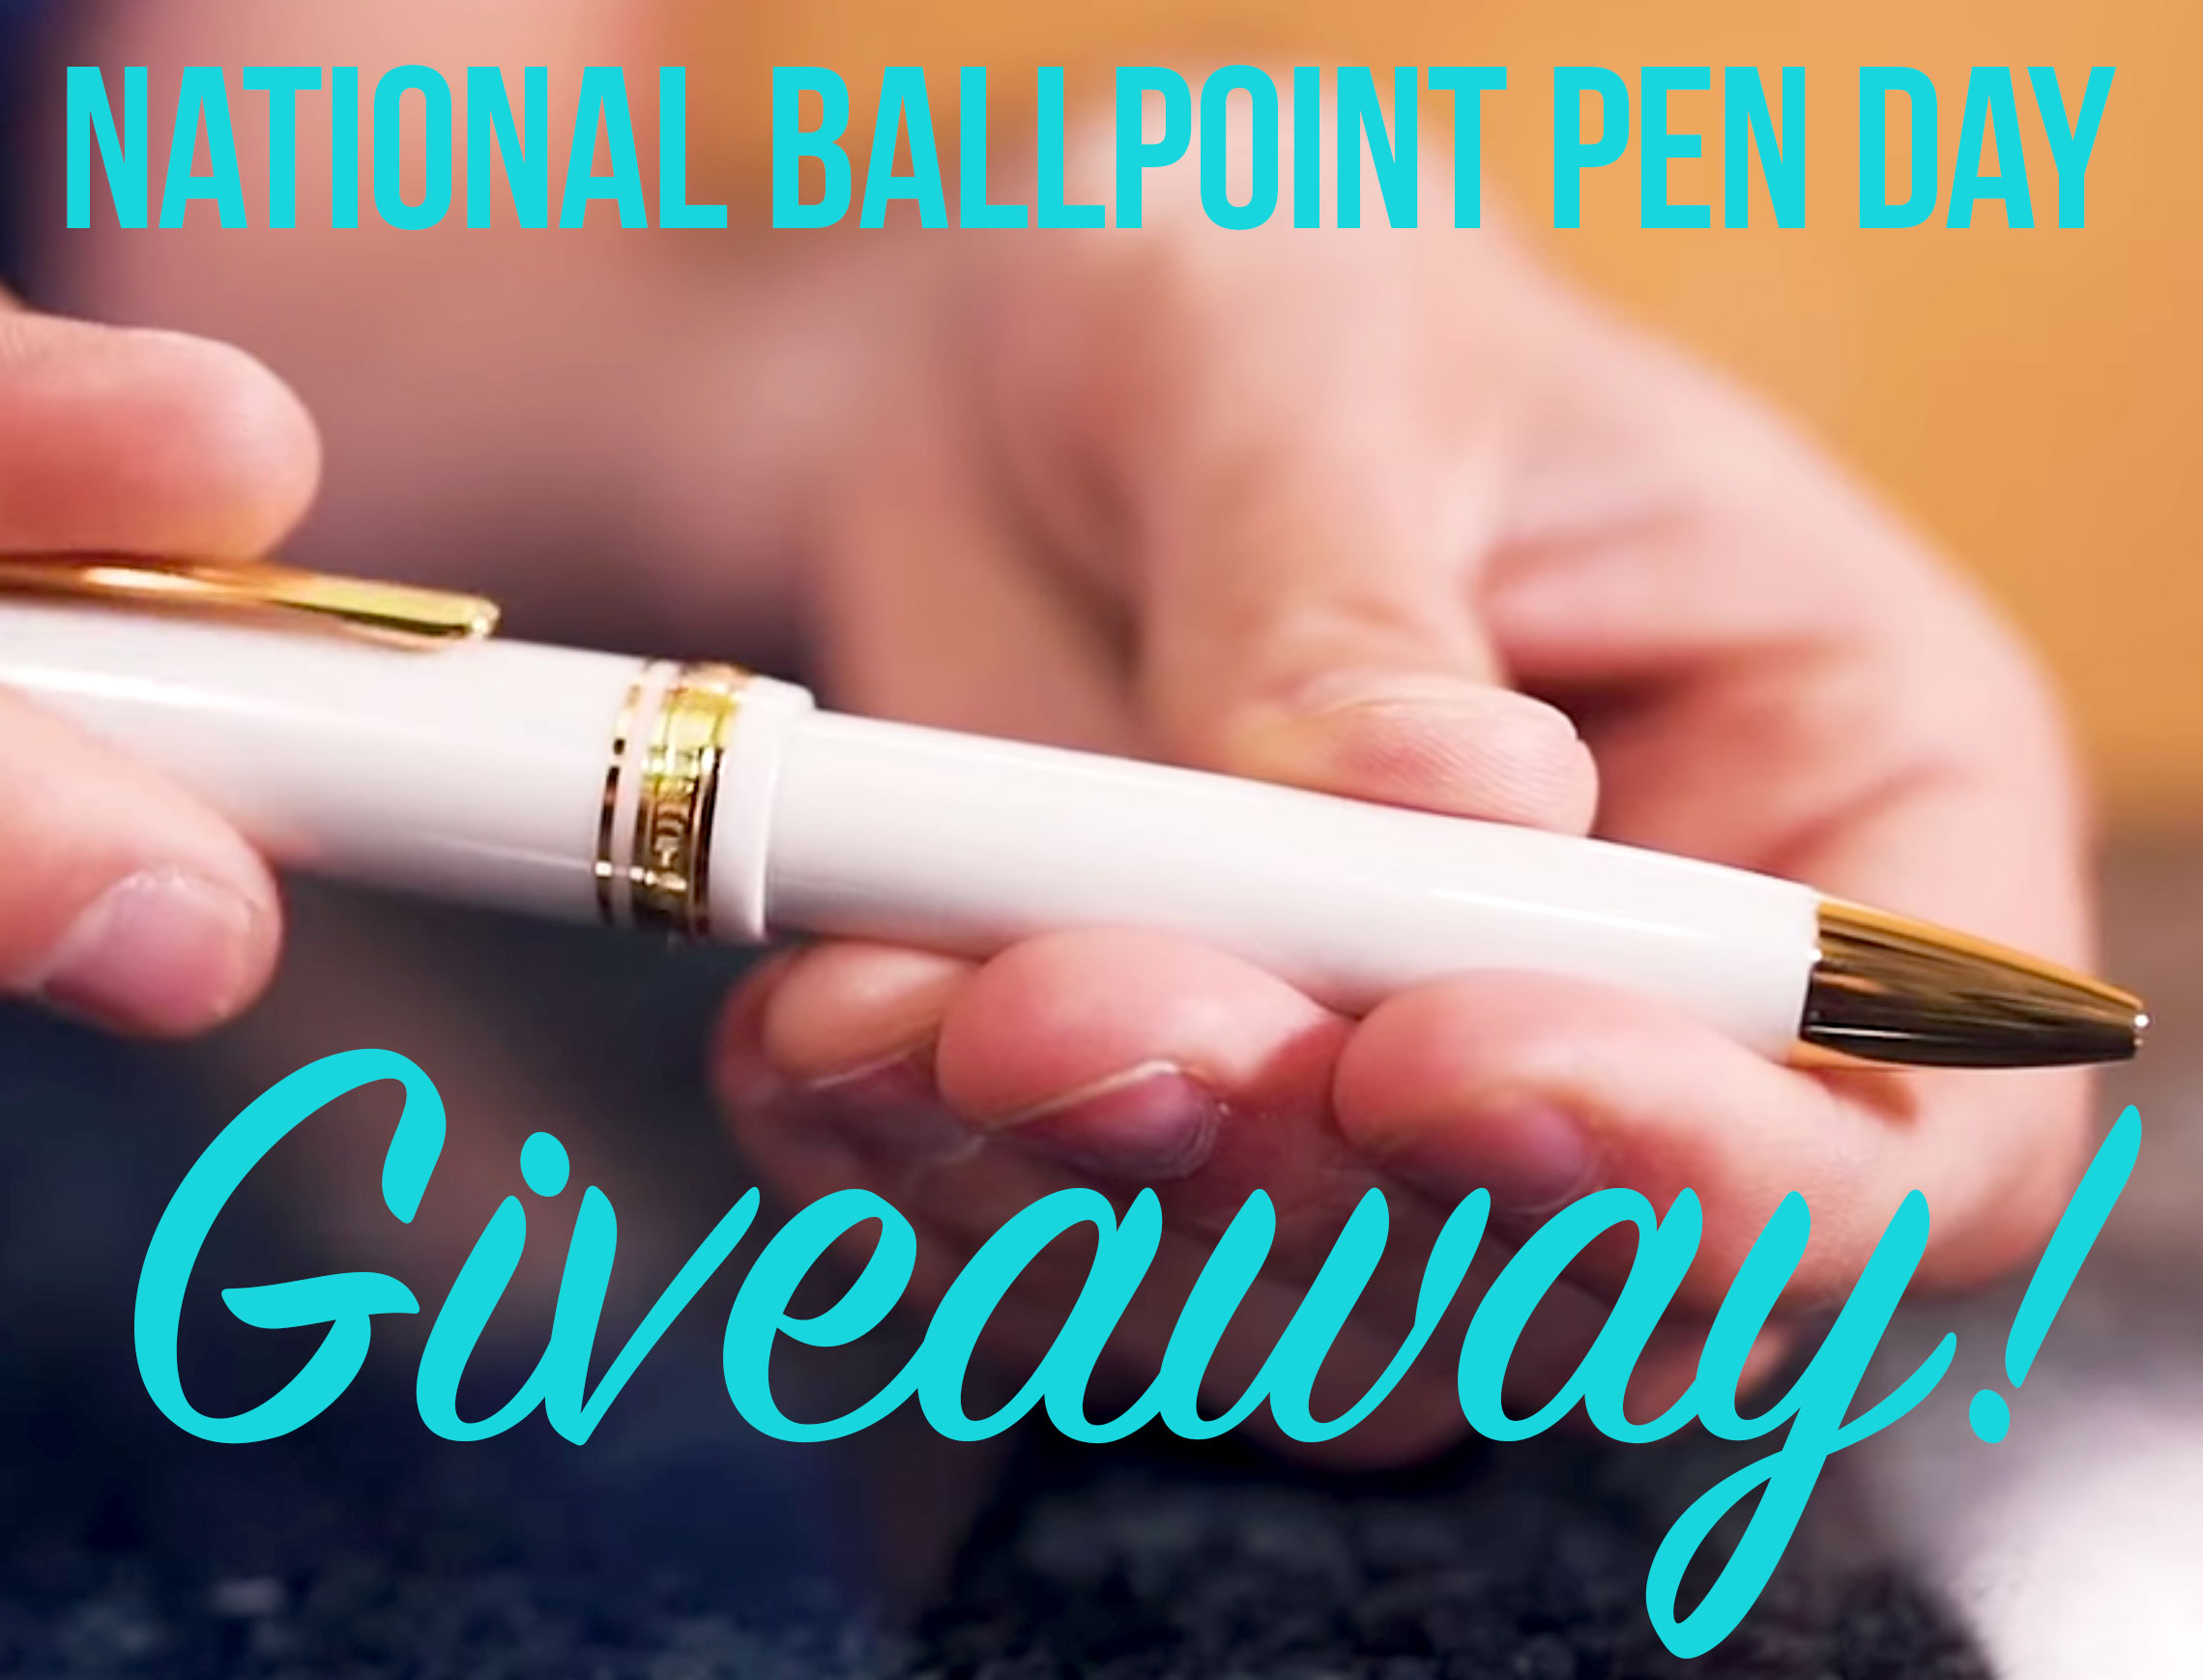 National Ballpoint Pen Day Giveaway Giveaway Image